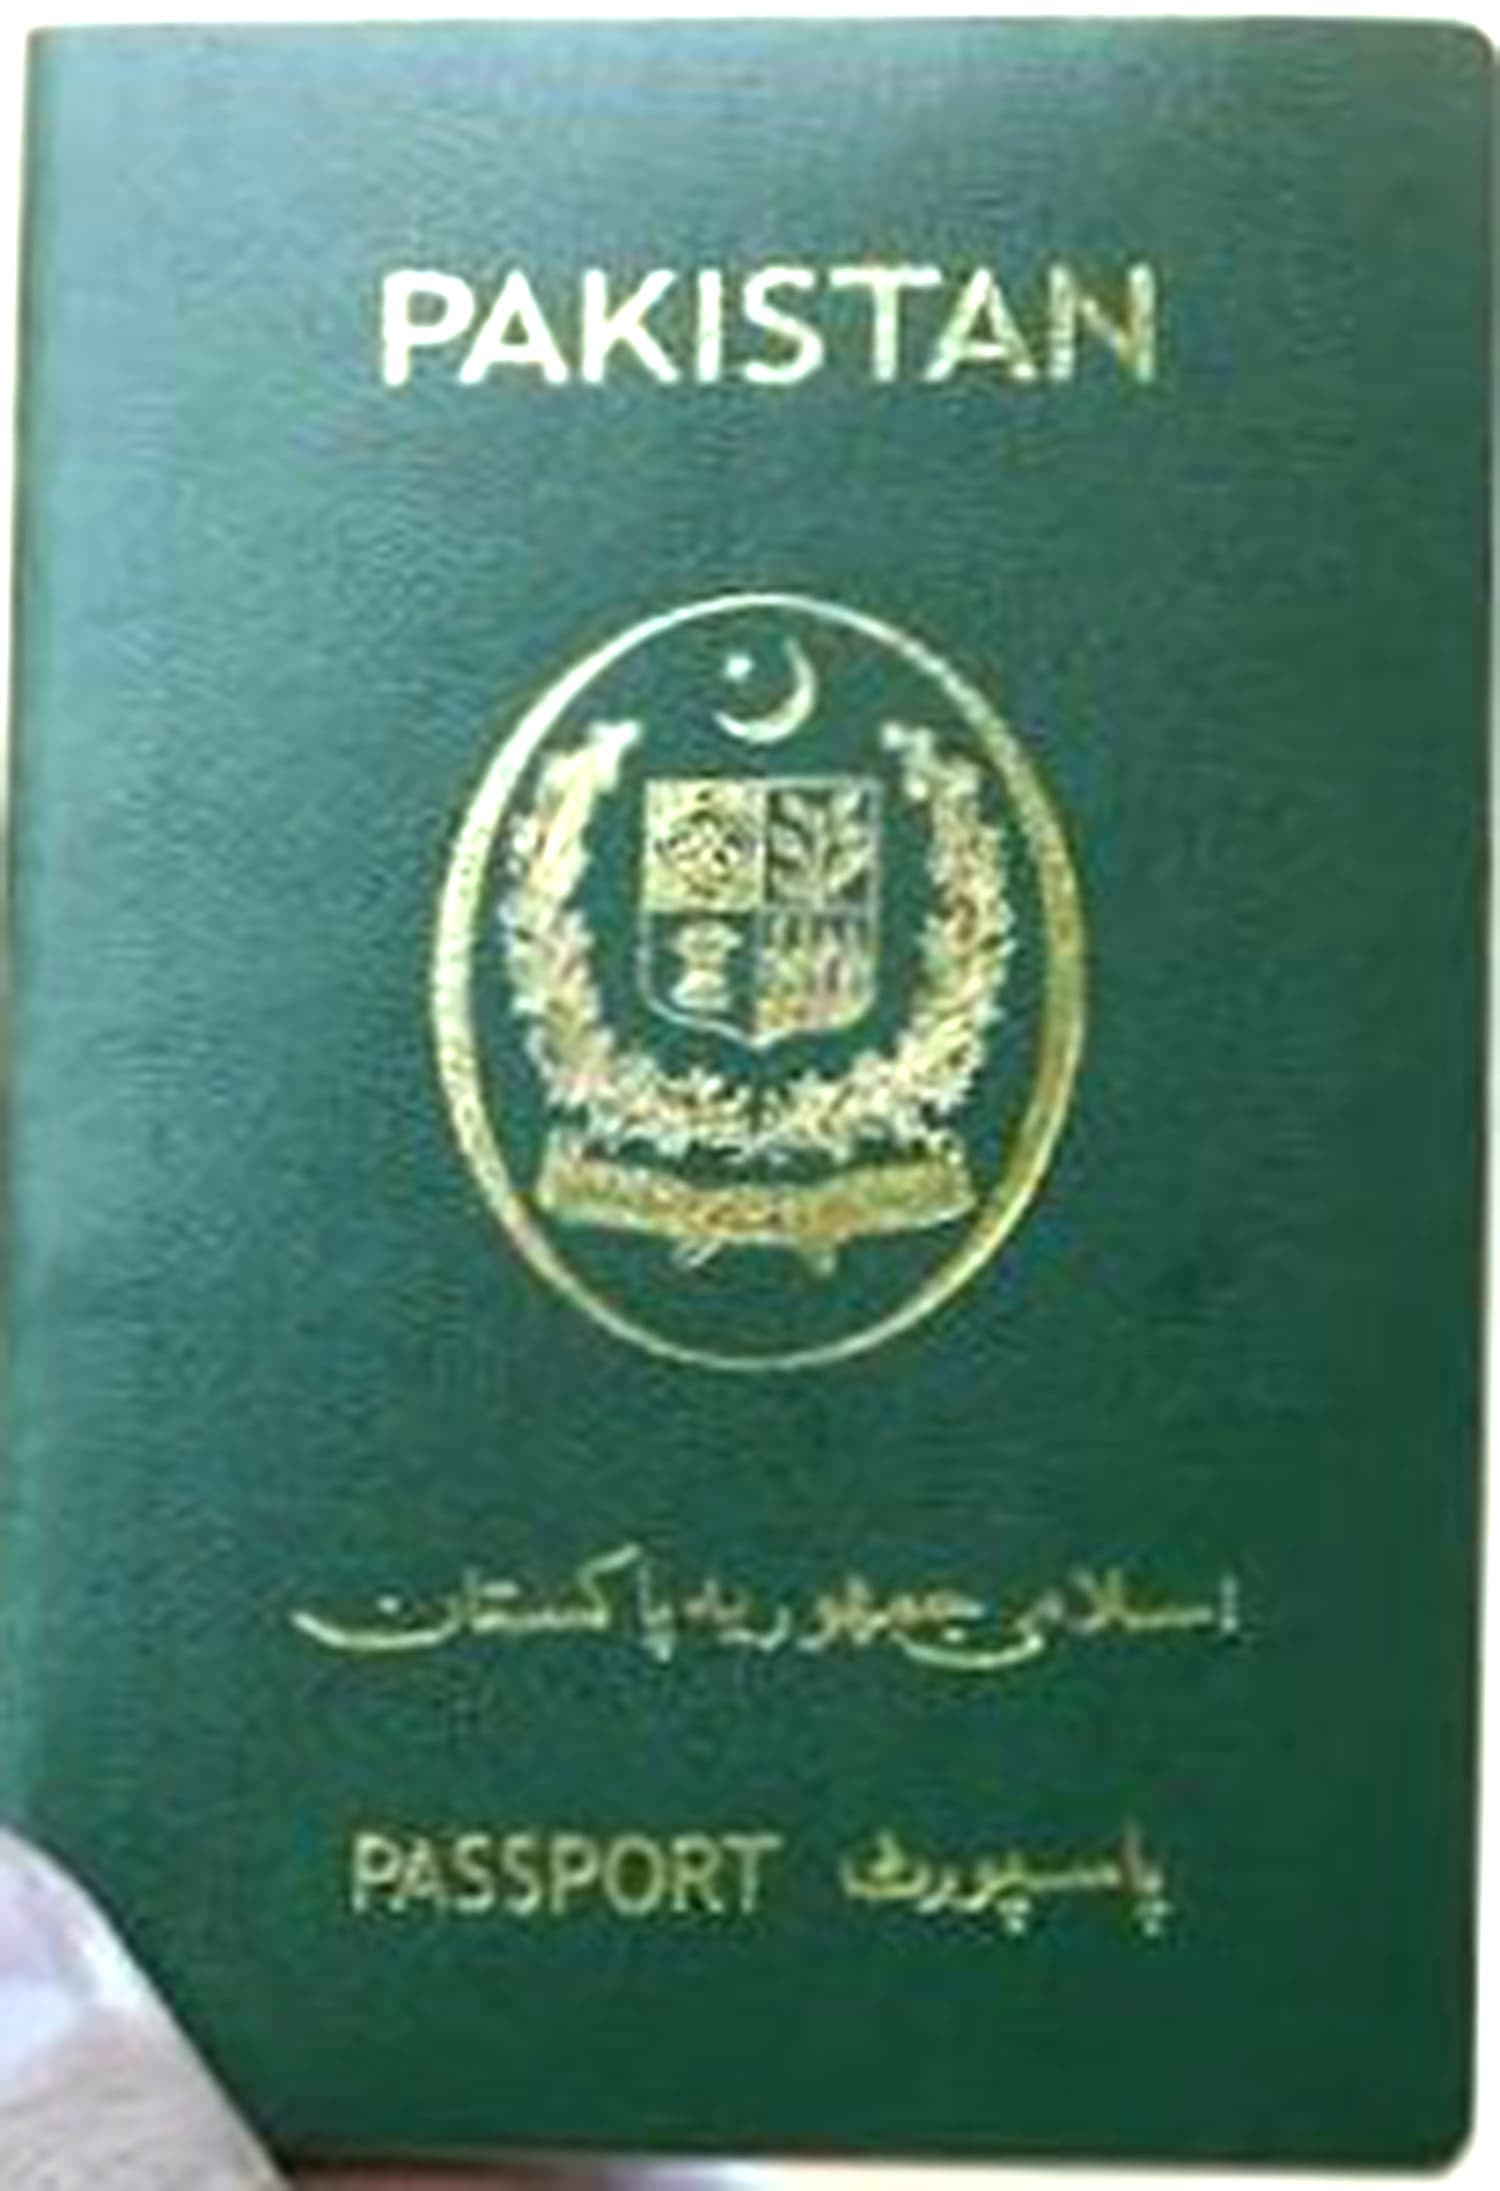 Some Pakistani embassies in European countries have started giving out this passport to dual-nationals. It says Islamic Republic in Urdu only